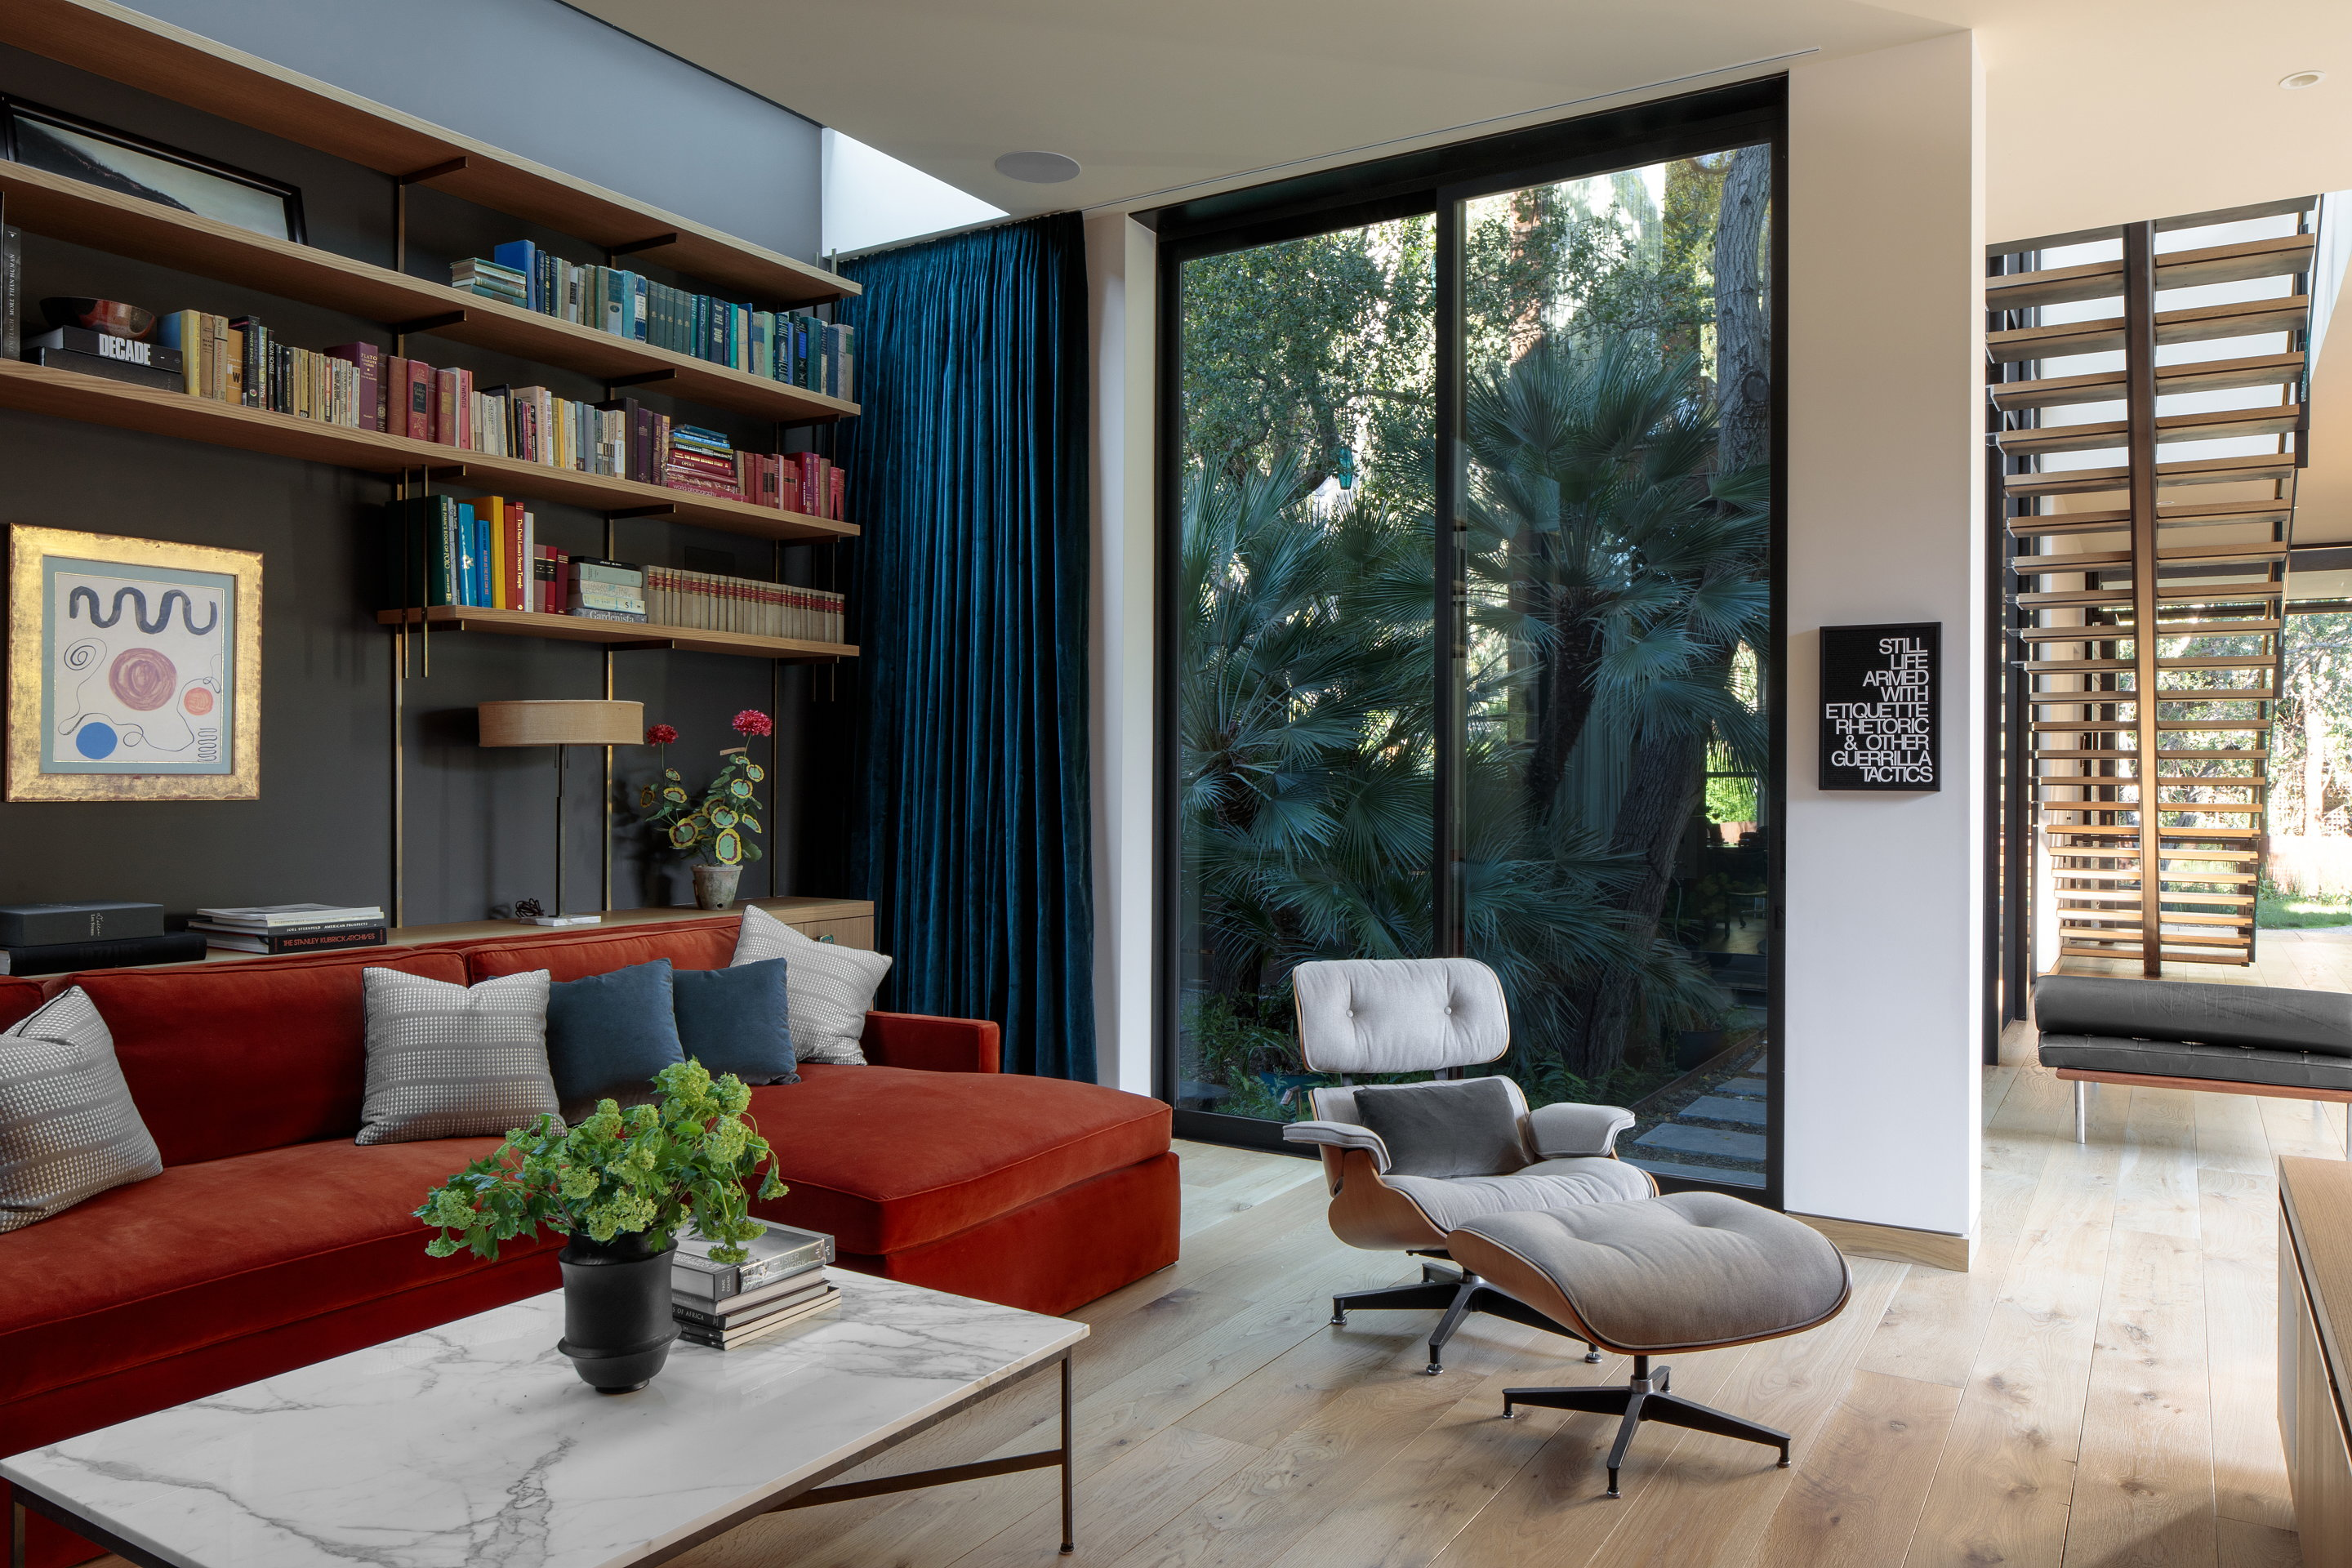 Los Angeles Residence by Conner Perry Architects